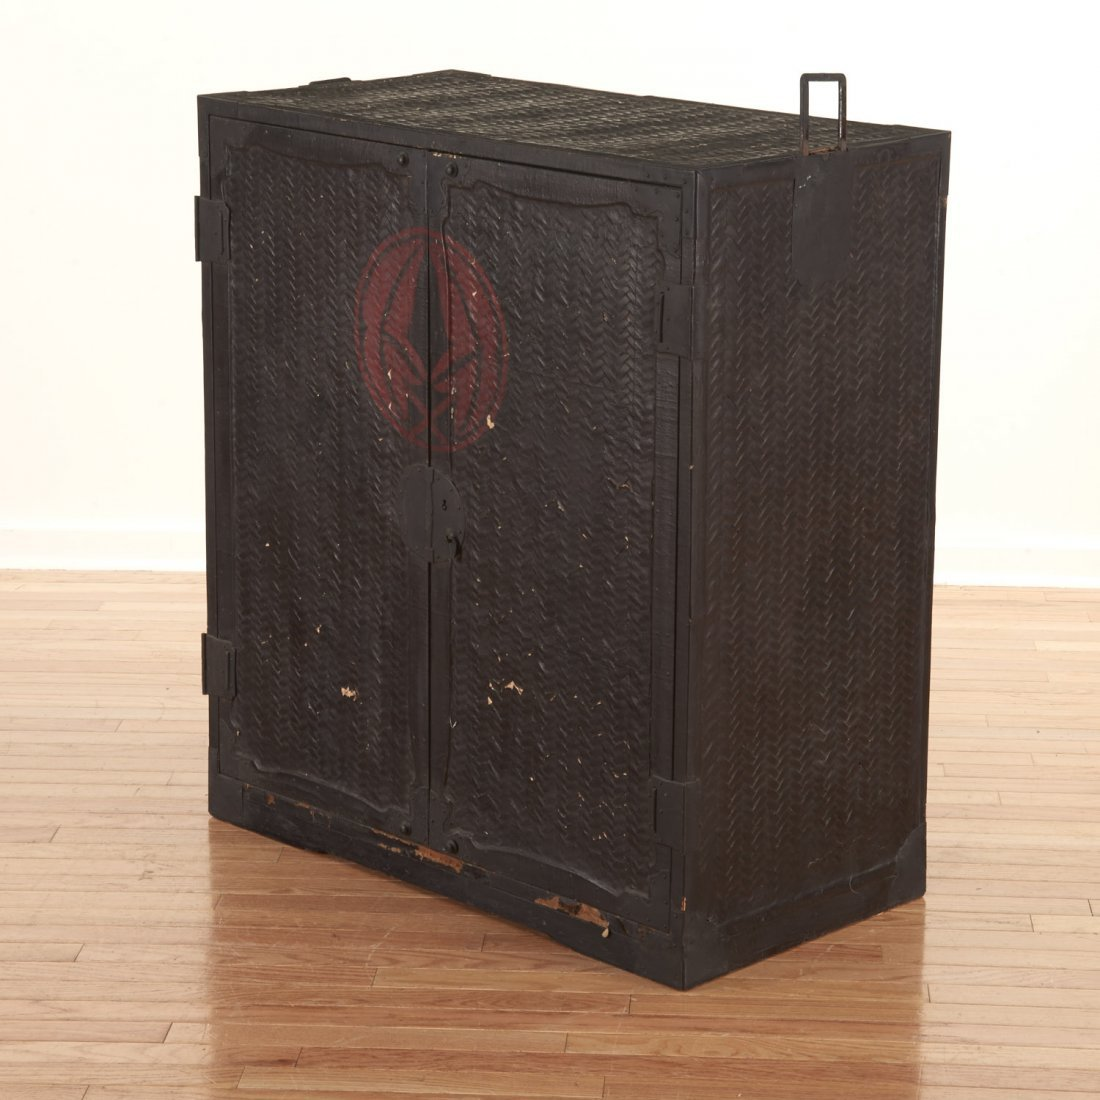 Japanese black painted rattan traveling chest - 4